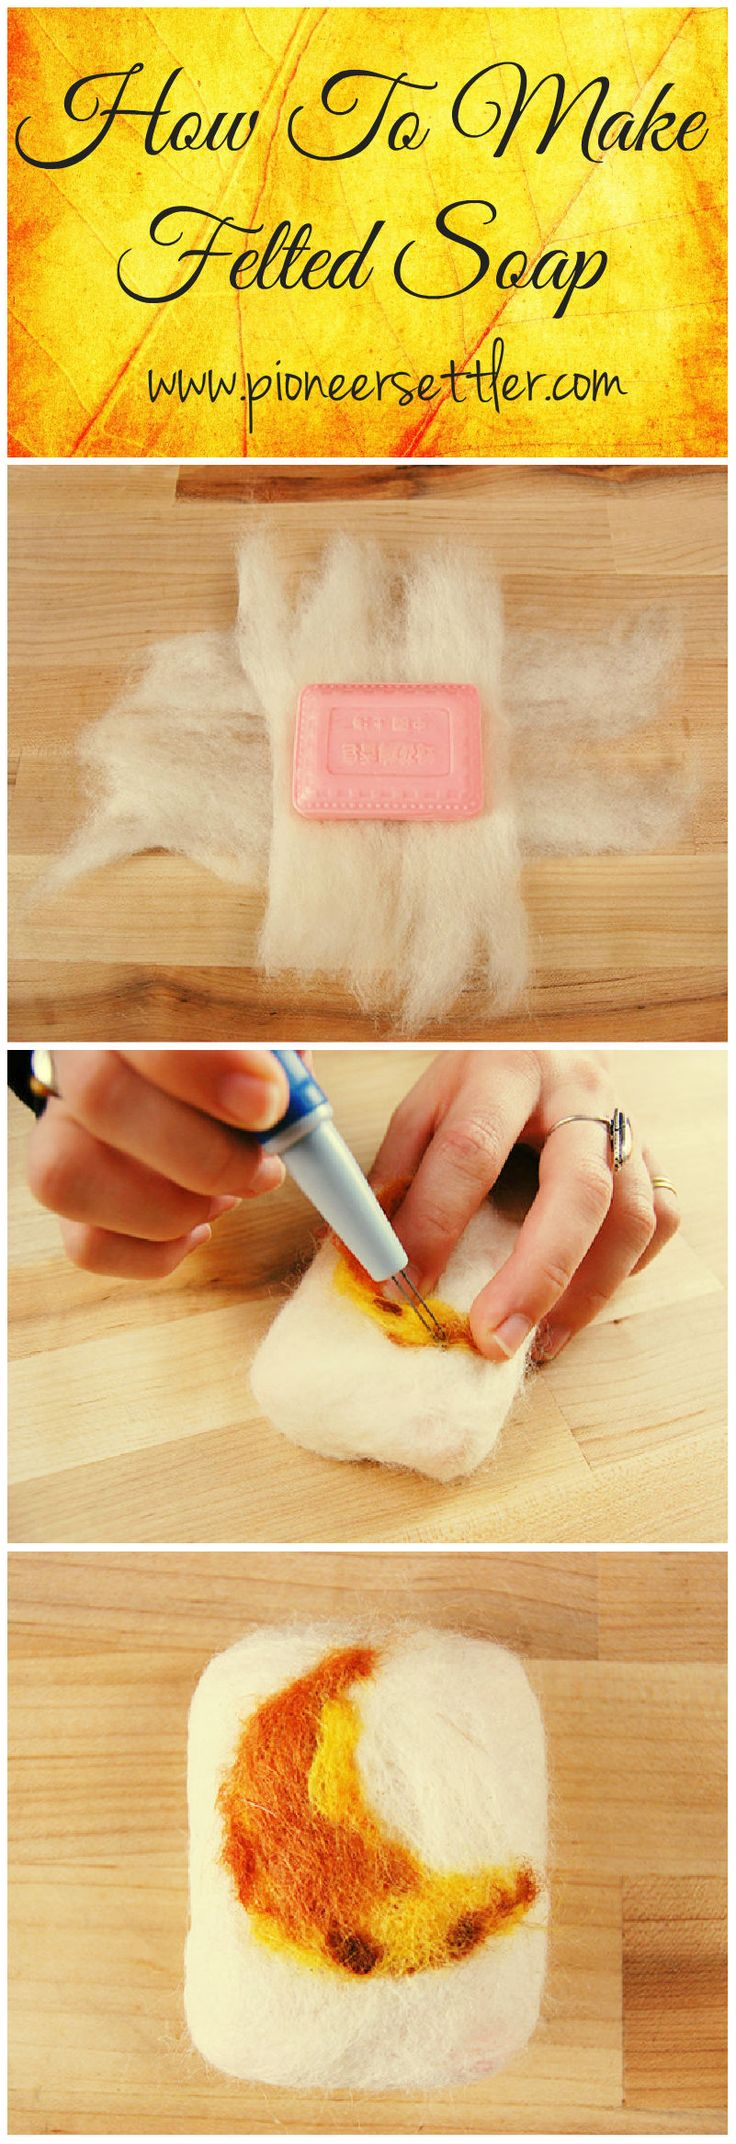 25 best ideas about felted soap on pinterest felted soap tutorial felted wool and wet. Black Bedroom Furniture Sets. Home Design Ideas